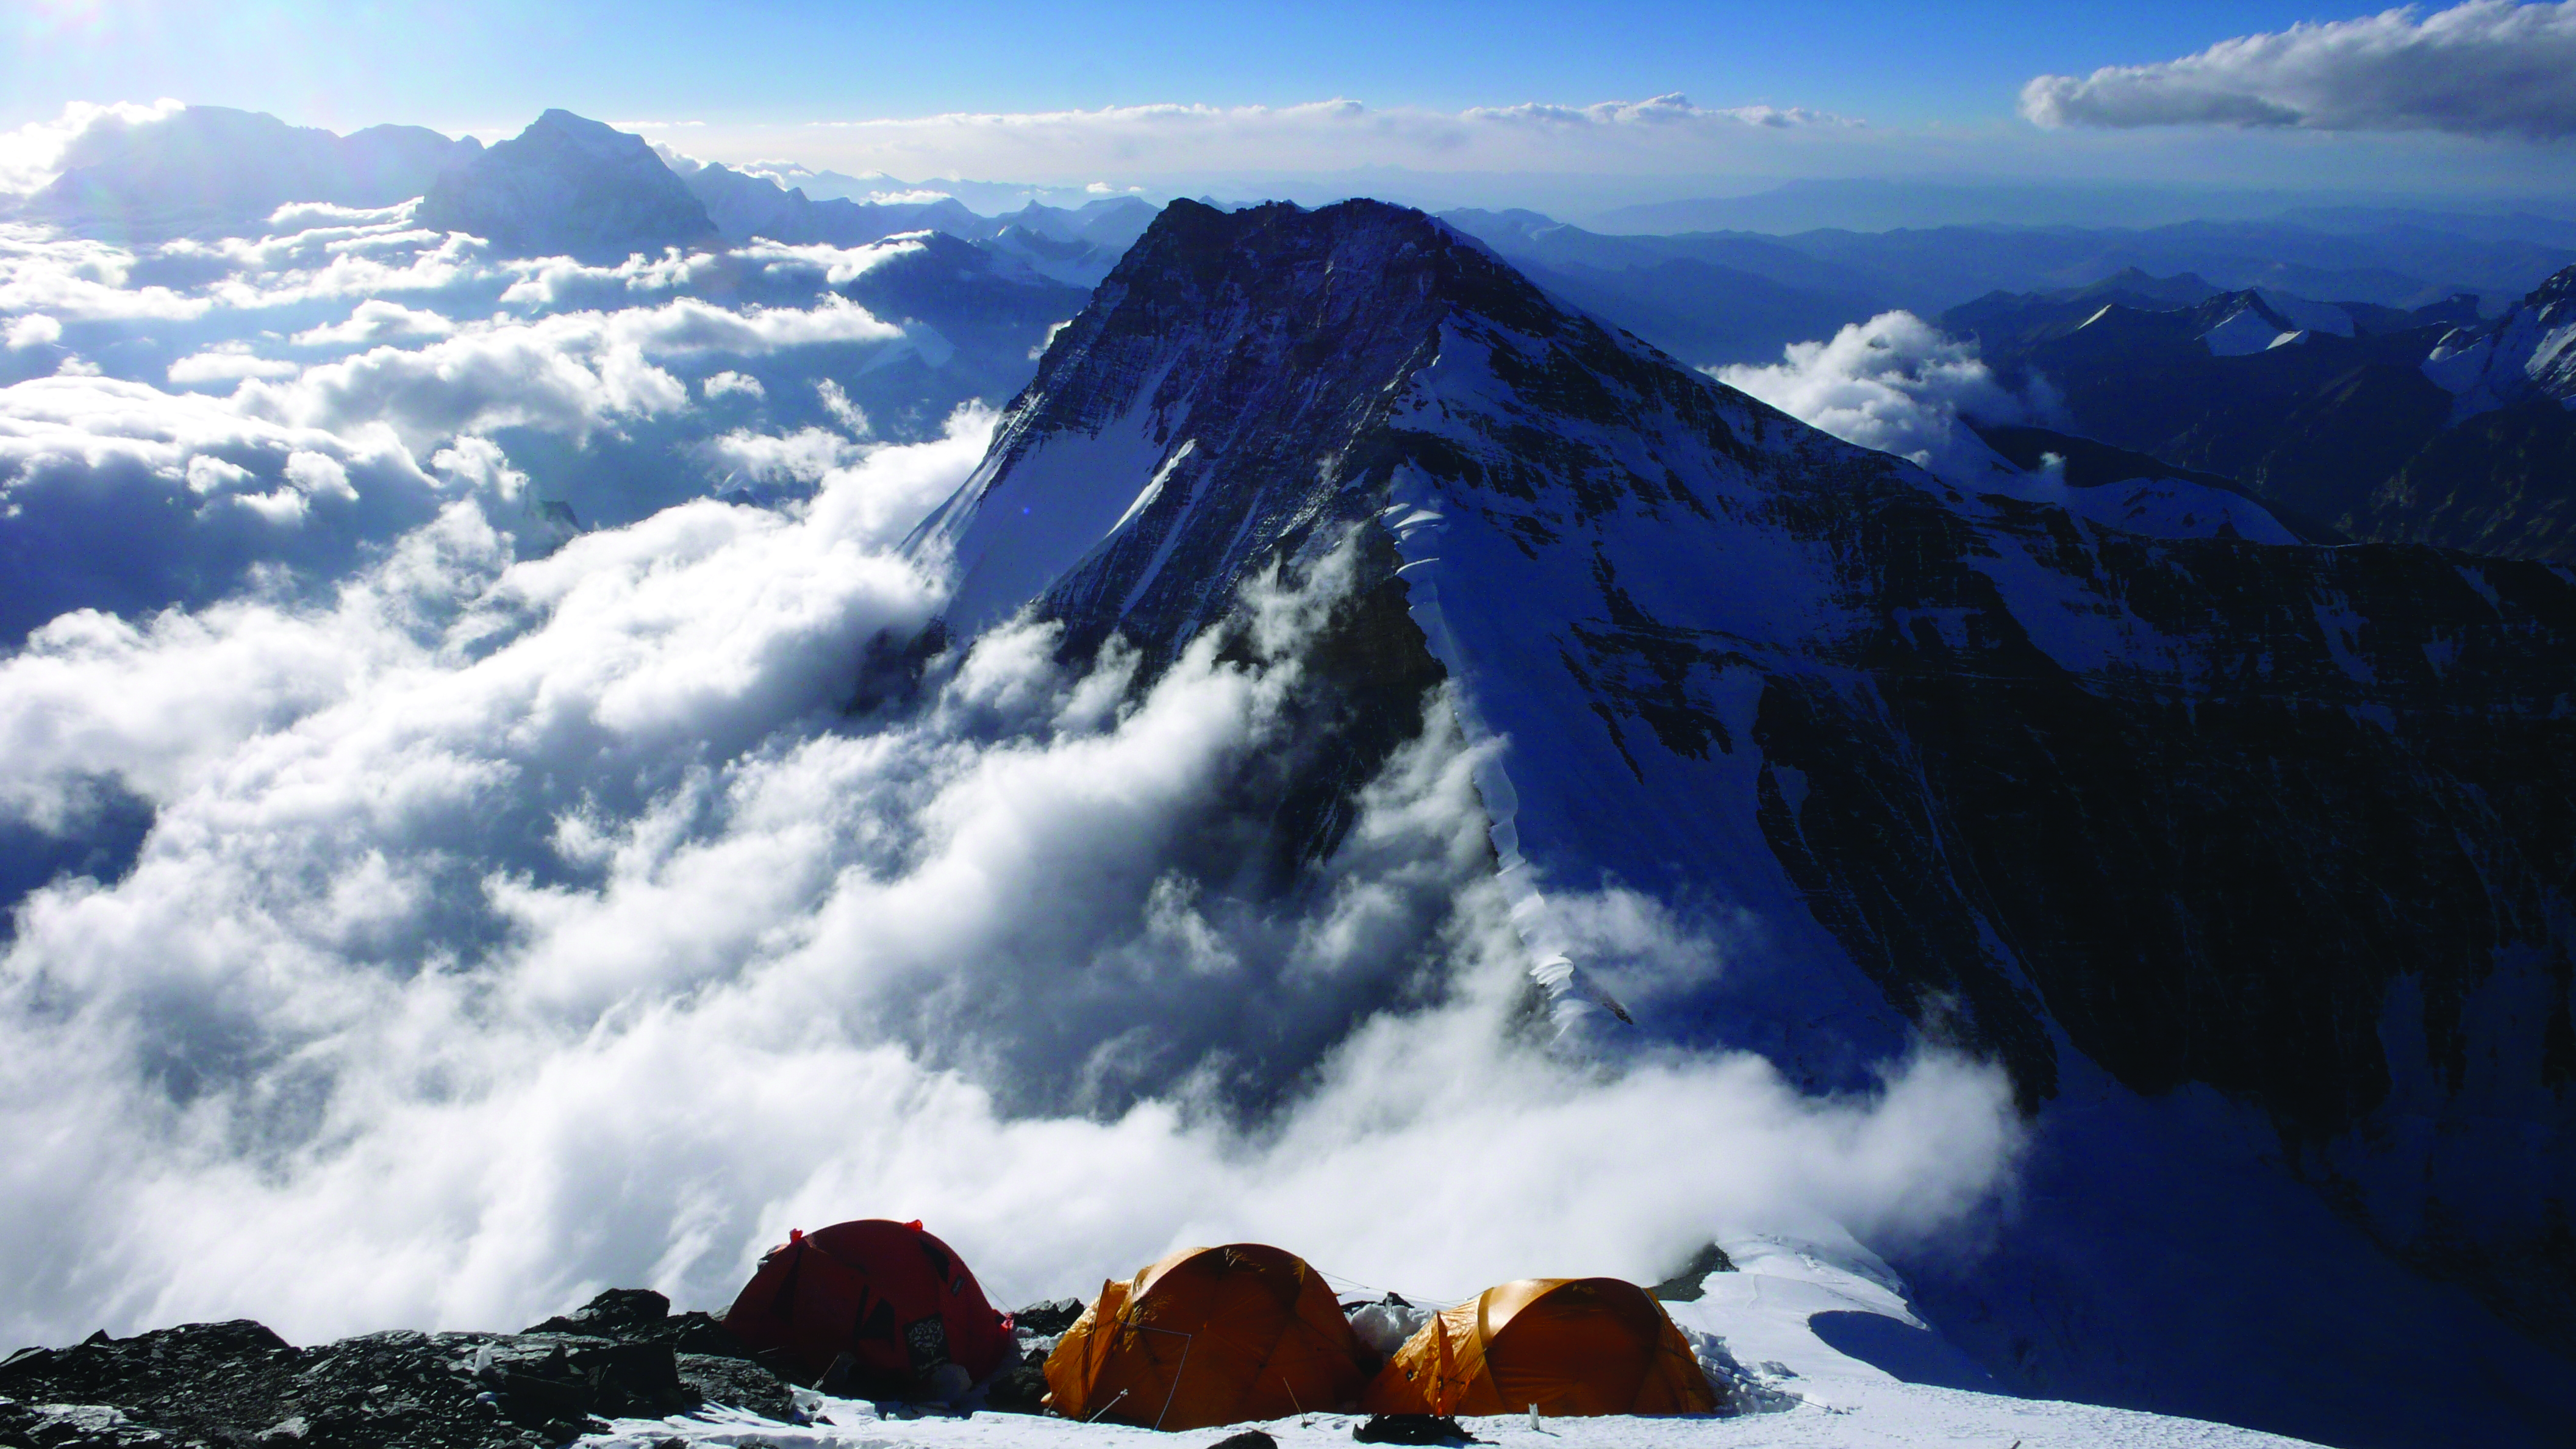 Tents pitched on mountain ridge descending into clouds